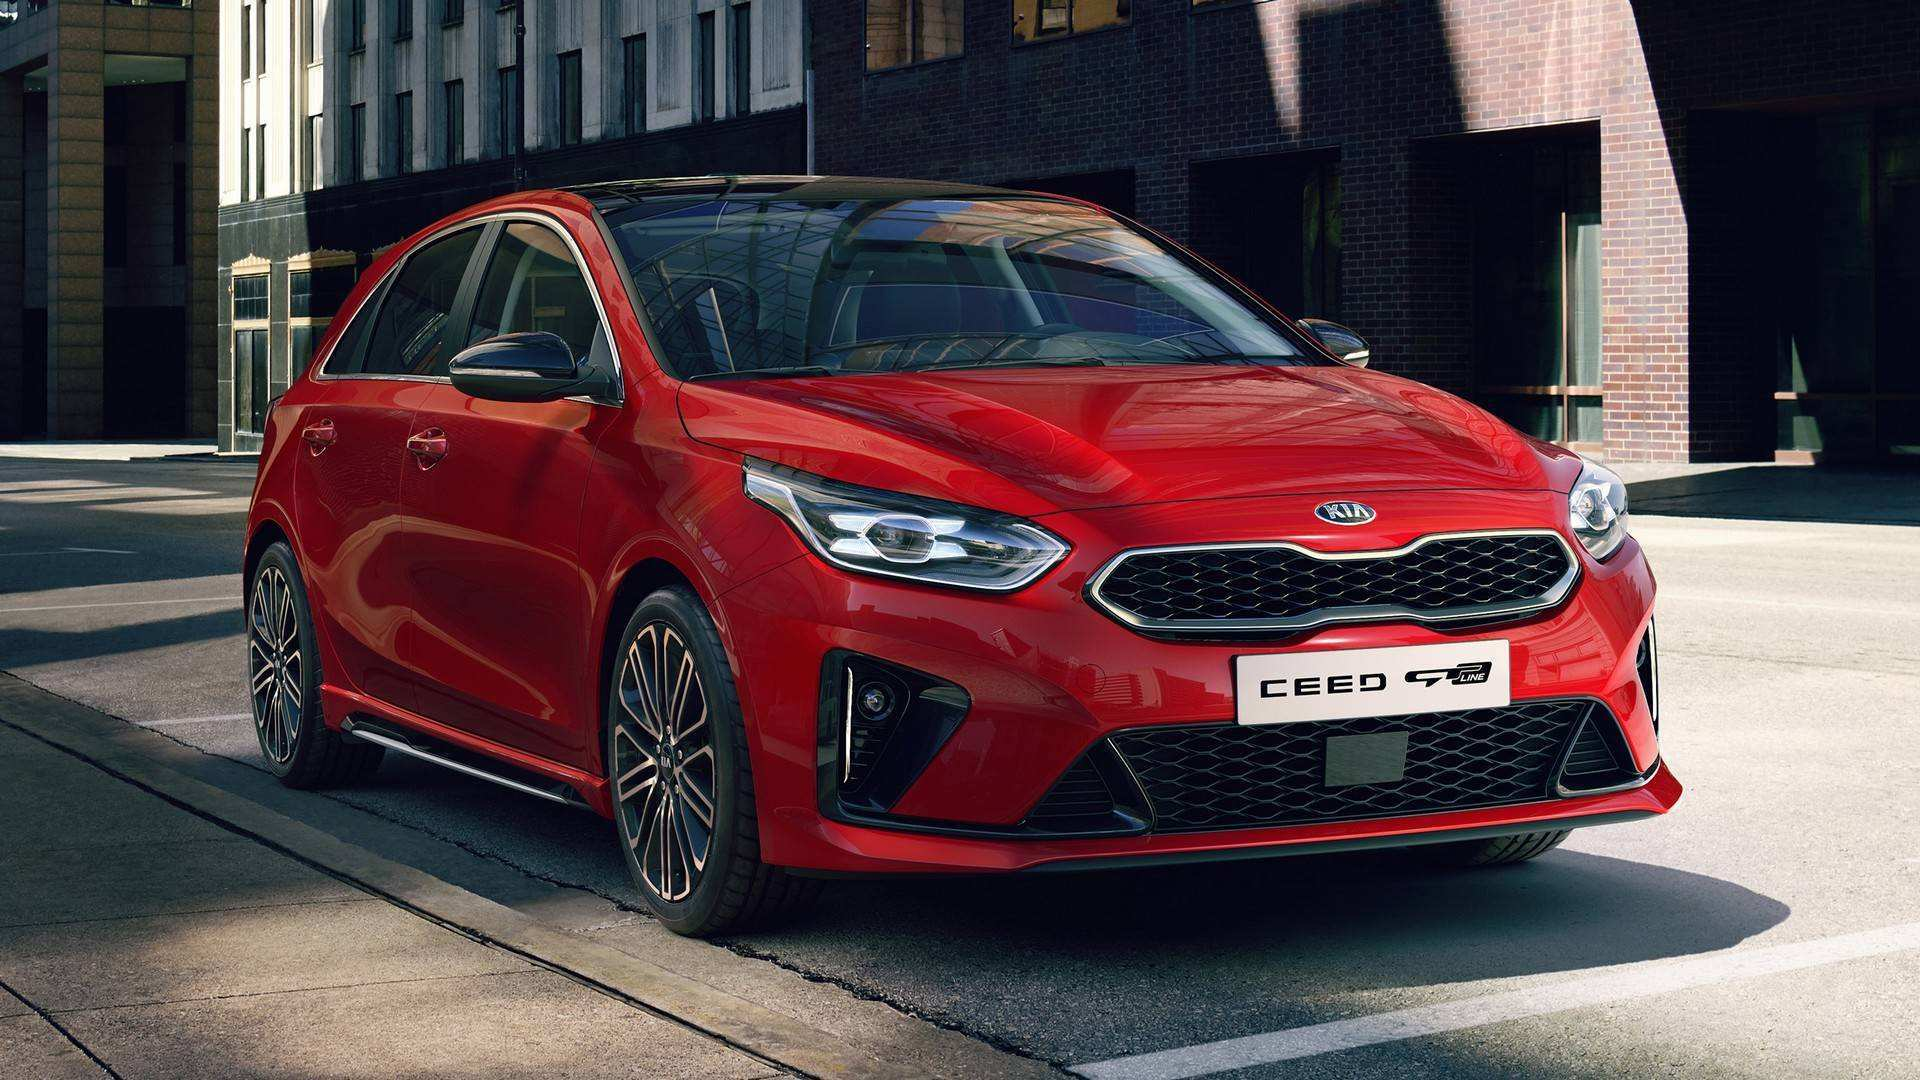 49 Best Review Kia Ceed Gt 2019 Ratings with Kia Ceed Gt 2019